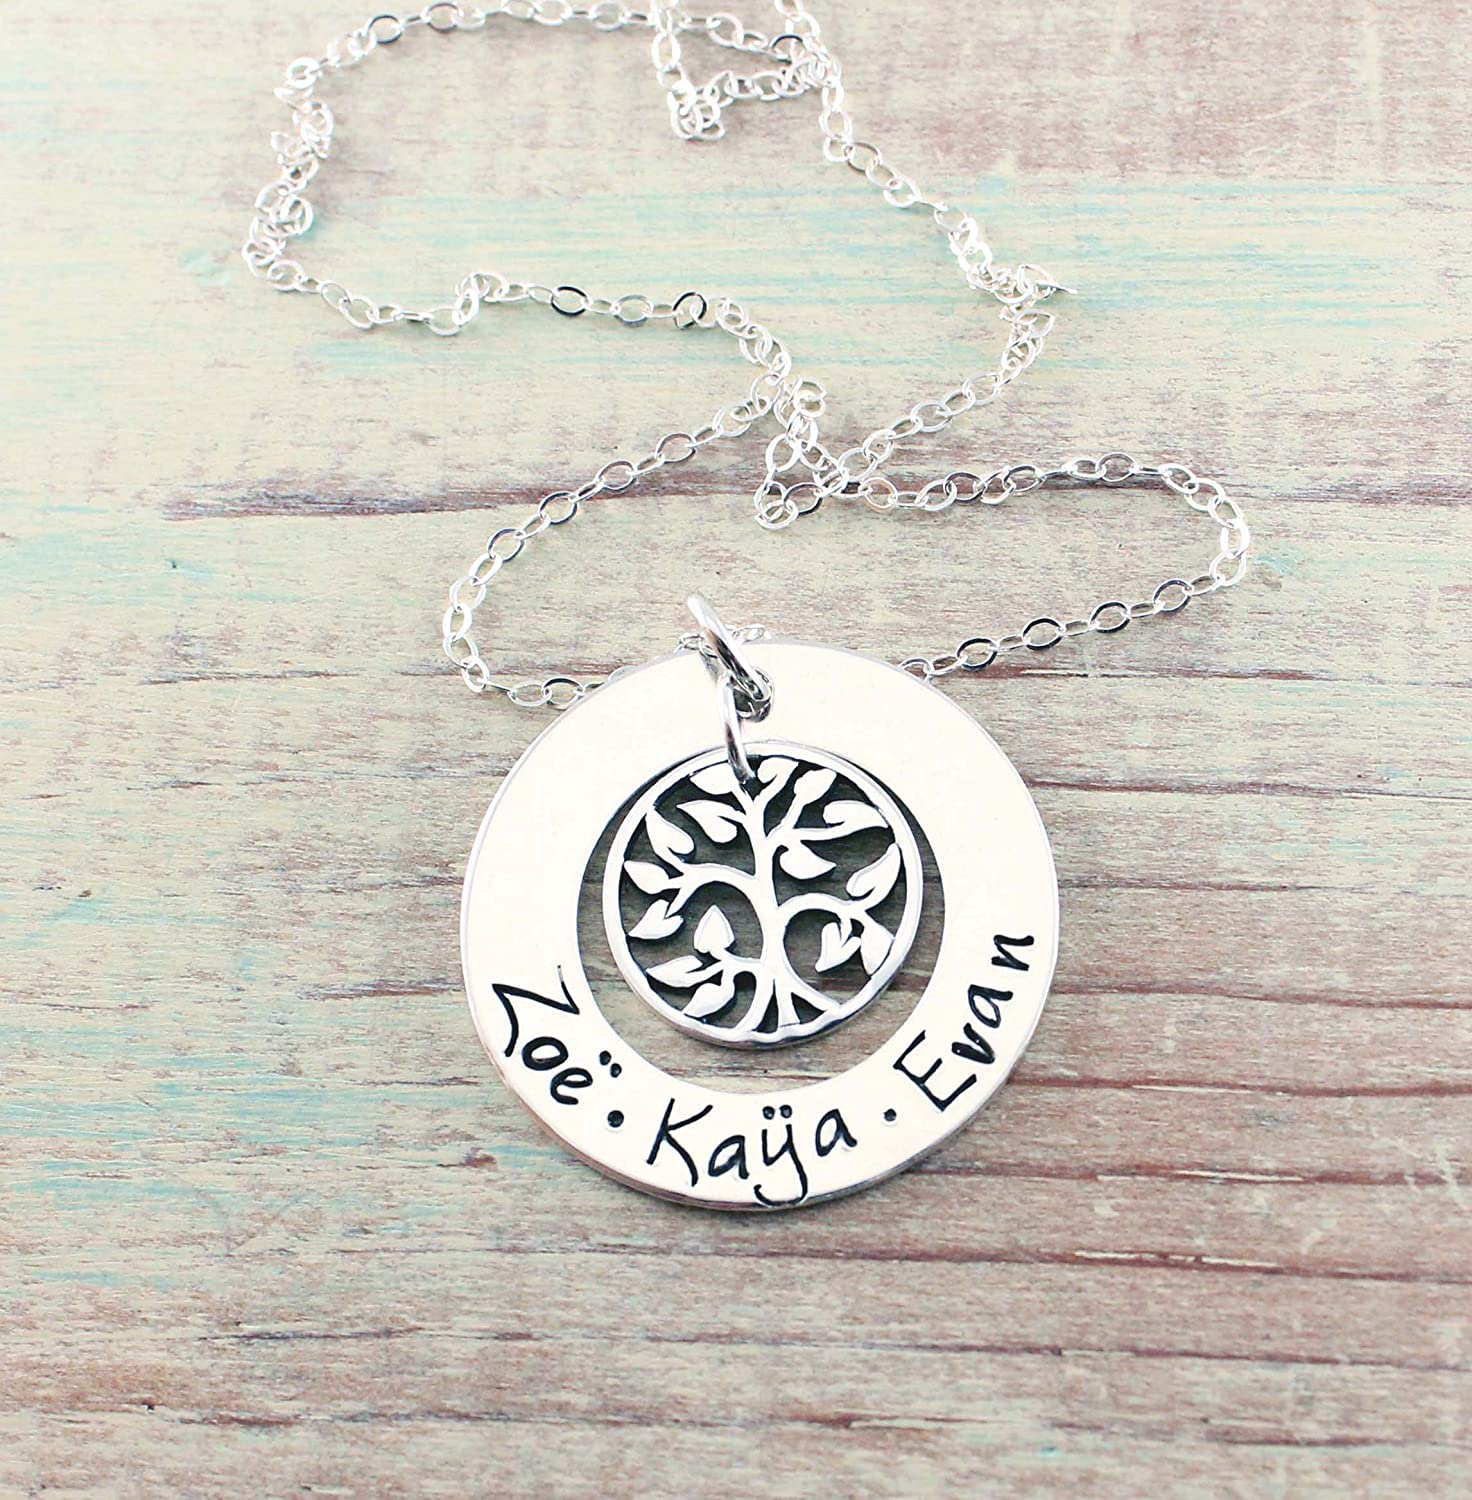 Family Names Necklace Mommy Necklace Personalized Mother Necklace Stamped Evermore Kids Names Necklace Grandmother Necklace